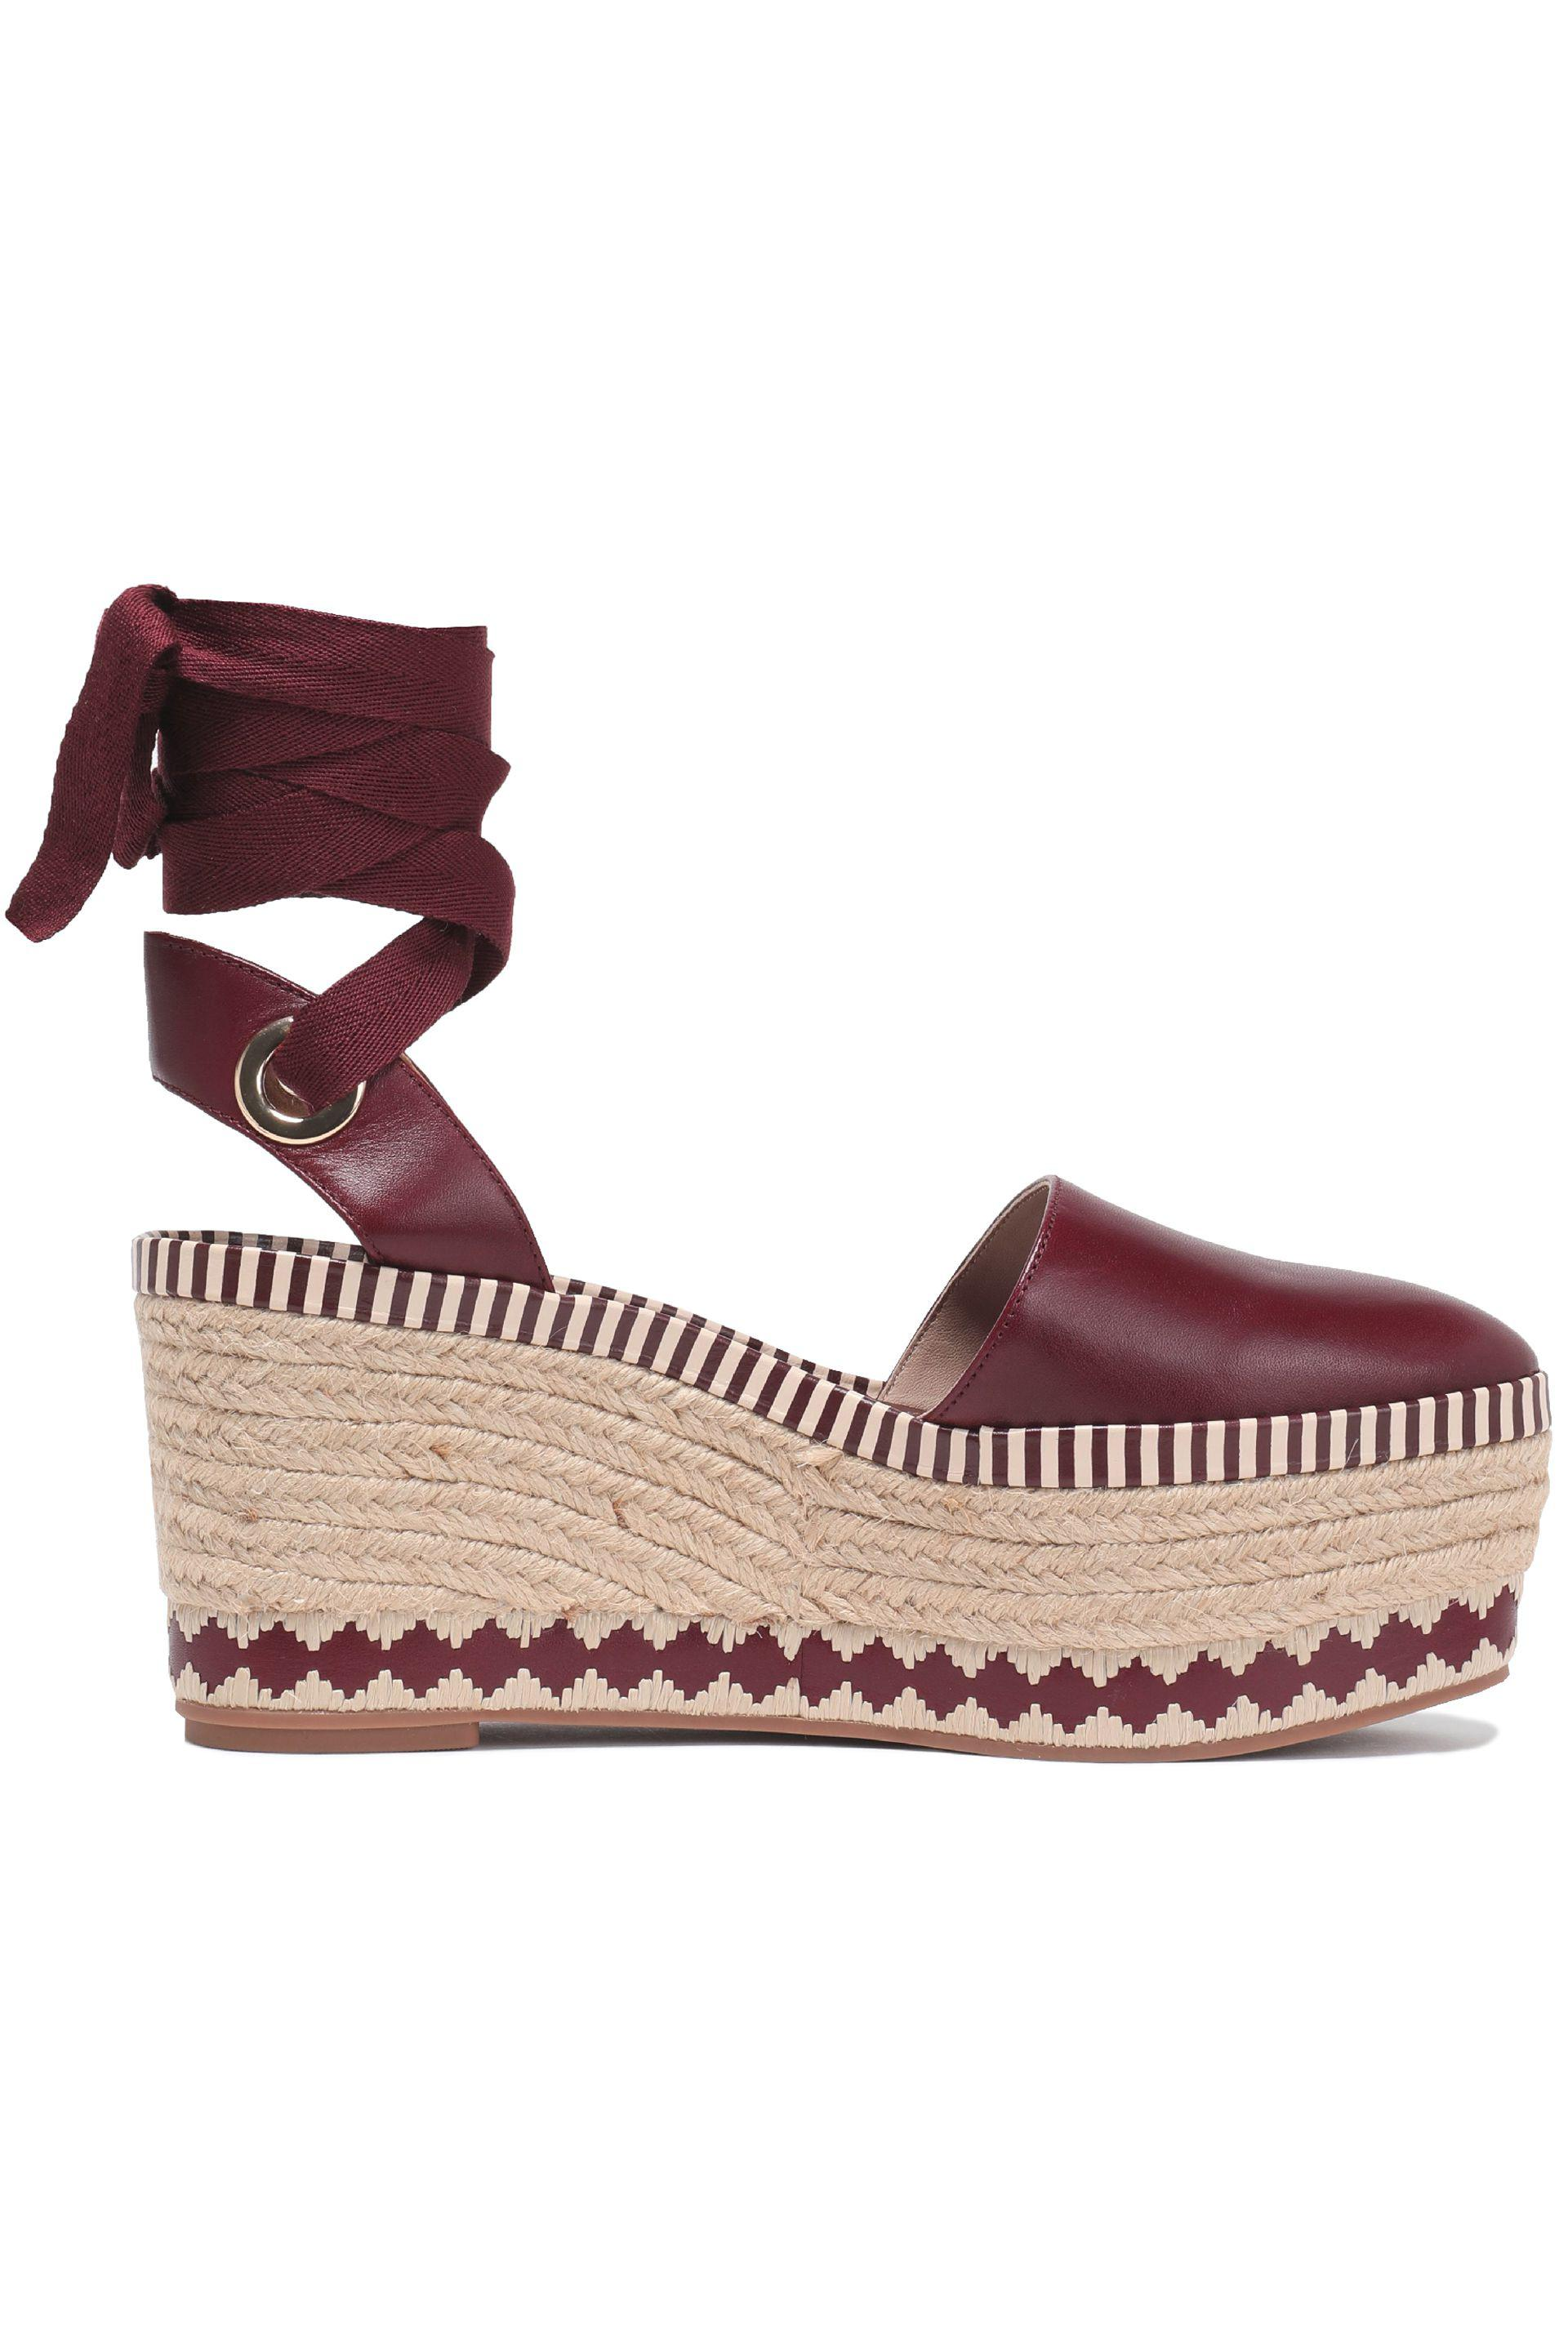 92b393bed Tory Burch Lace-up Leather Platform Espadrilles in Brown - Lyst